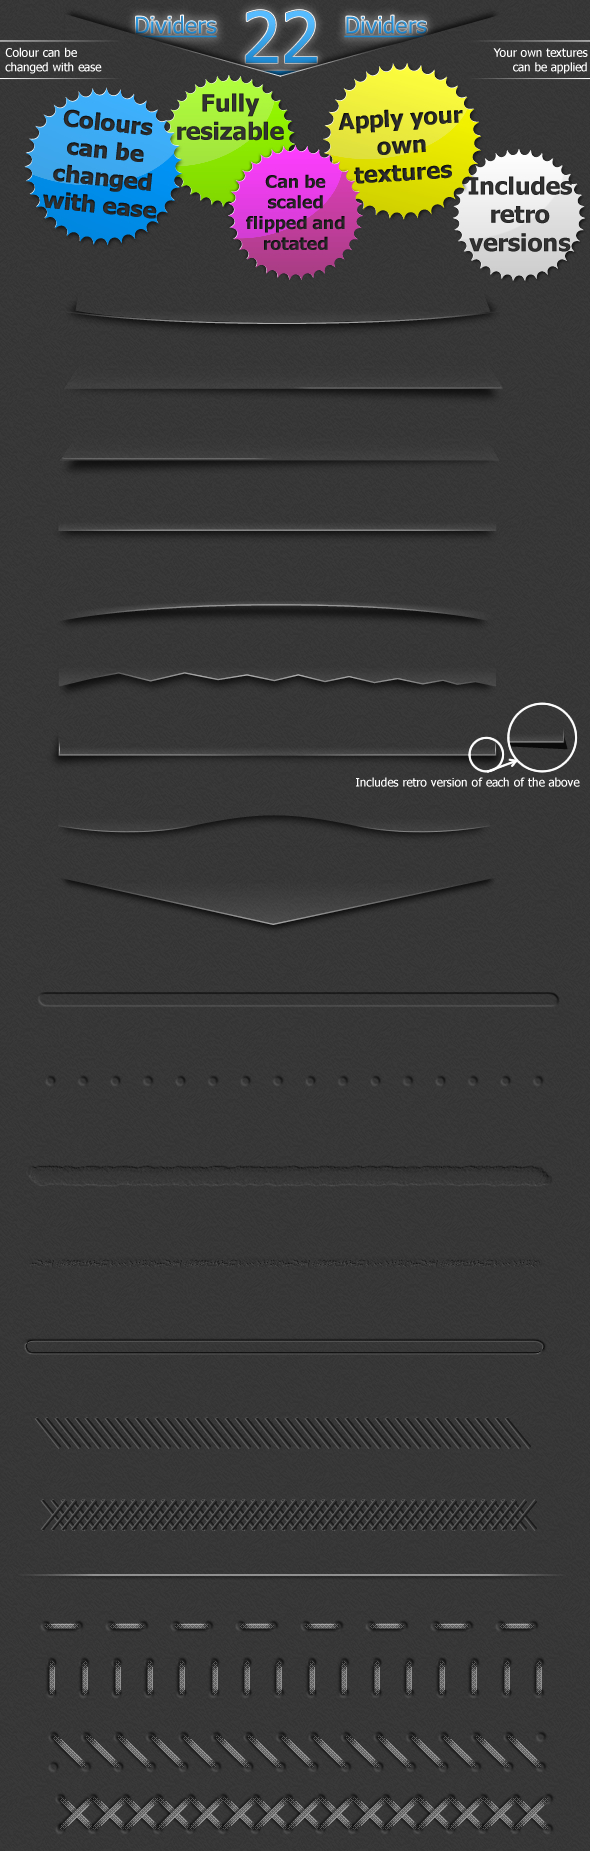 22 Amazing web dividers by Umbot